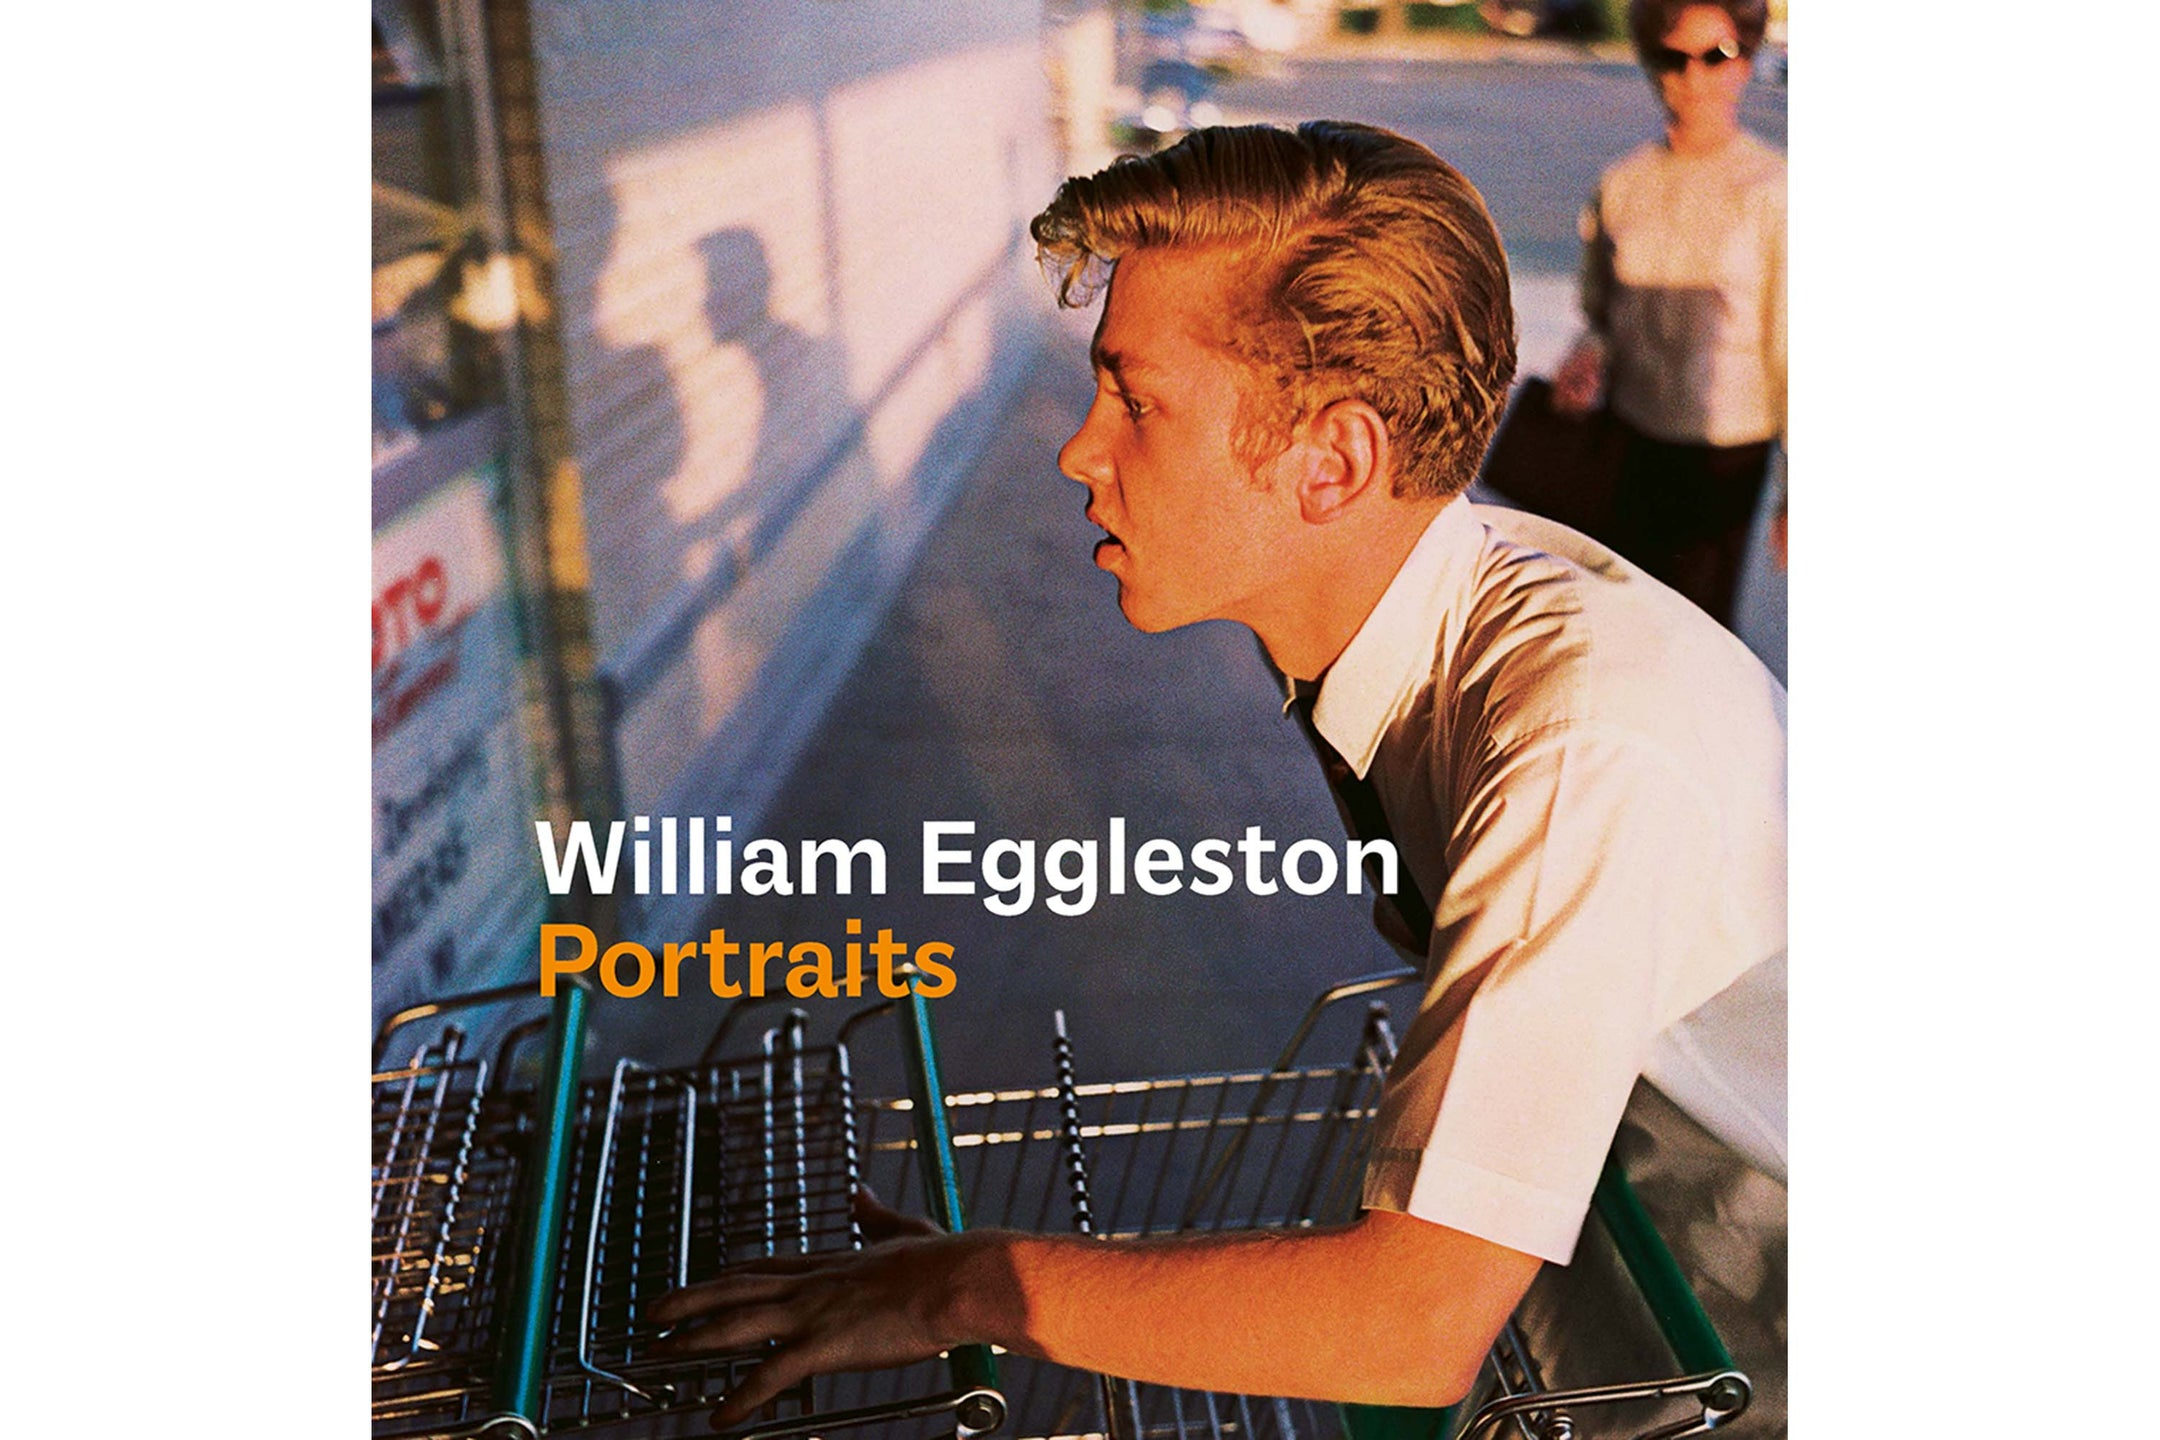 William Eggleston - Portraits